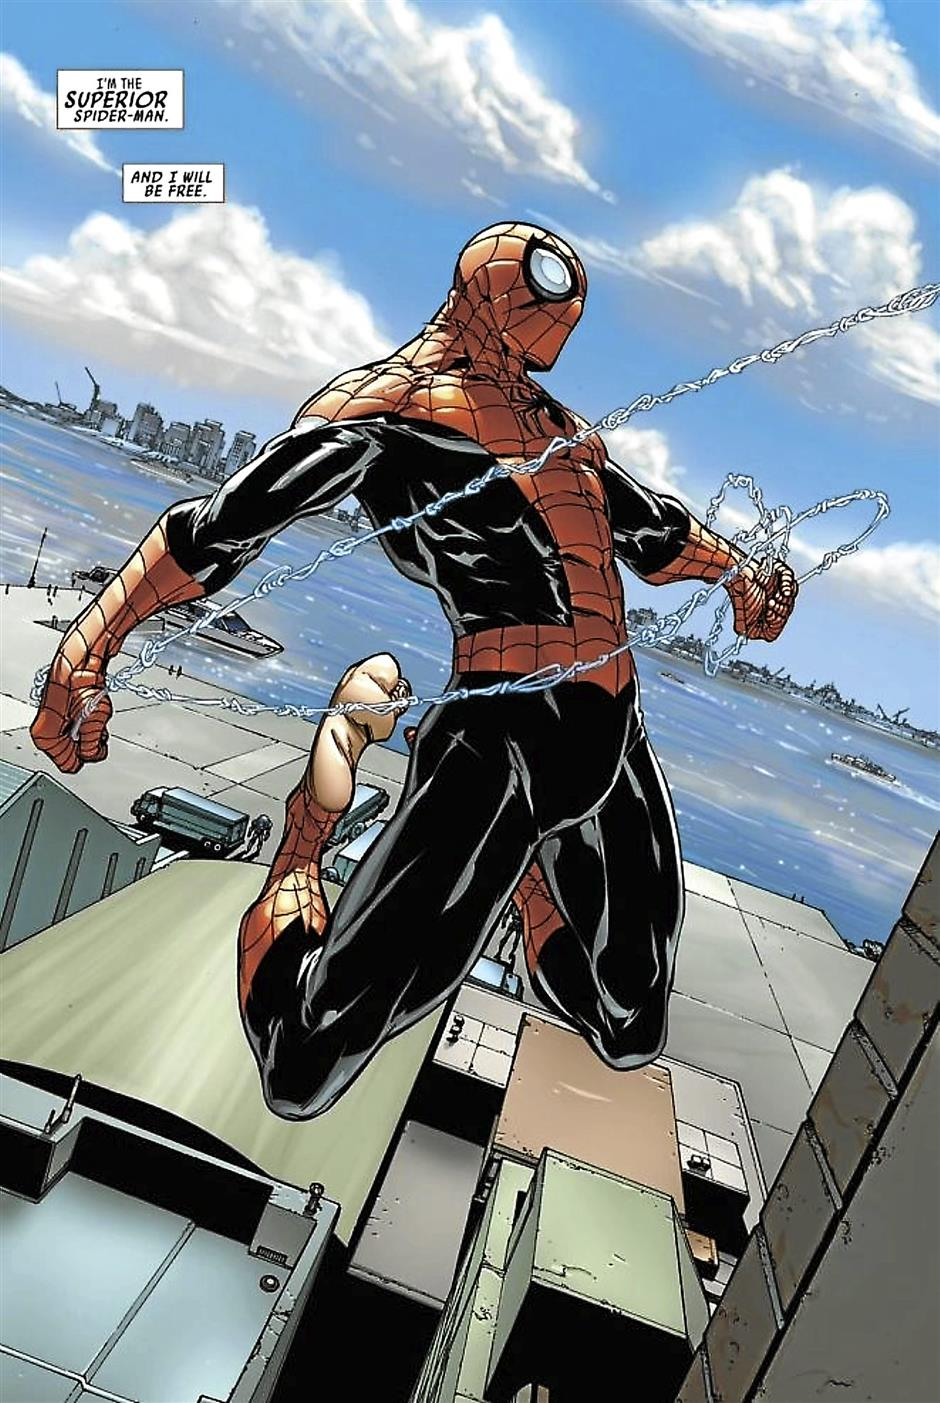 The Superior Spider-Man features heavily in Kaleon's list.